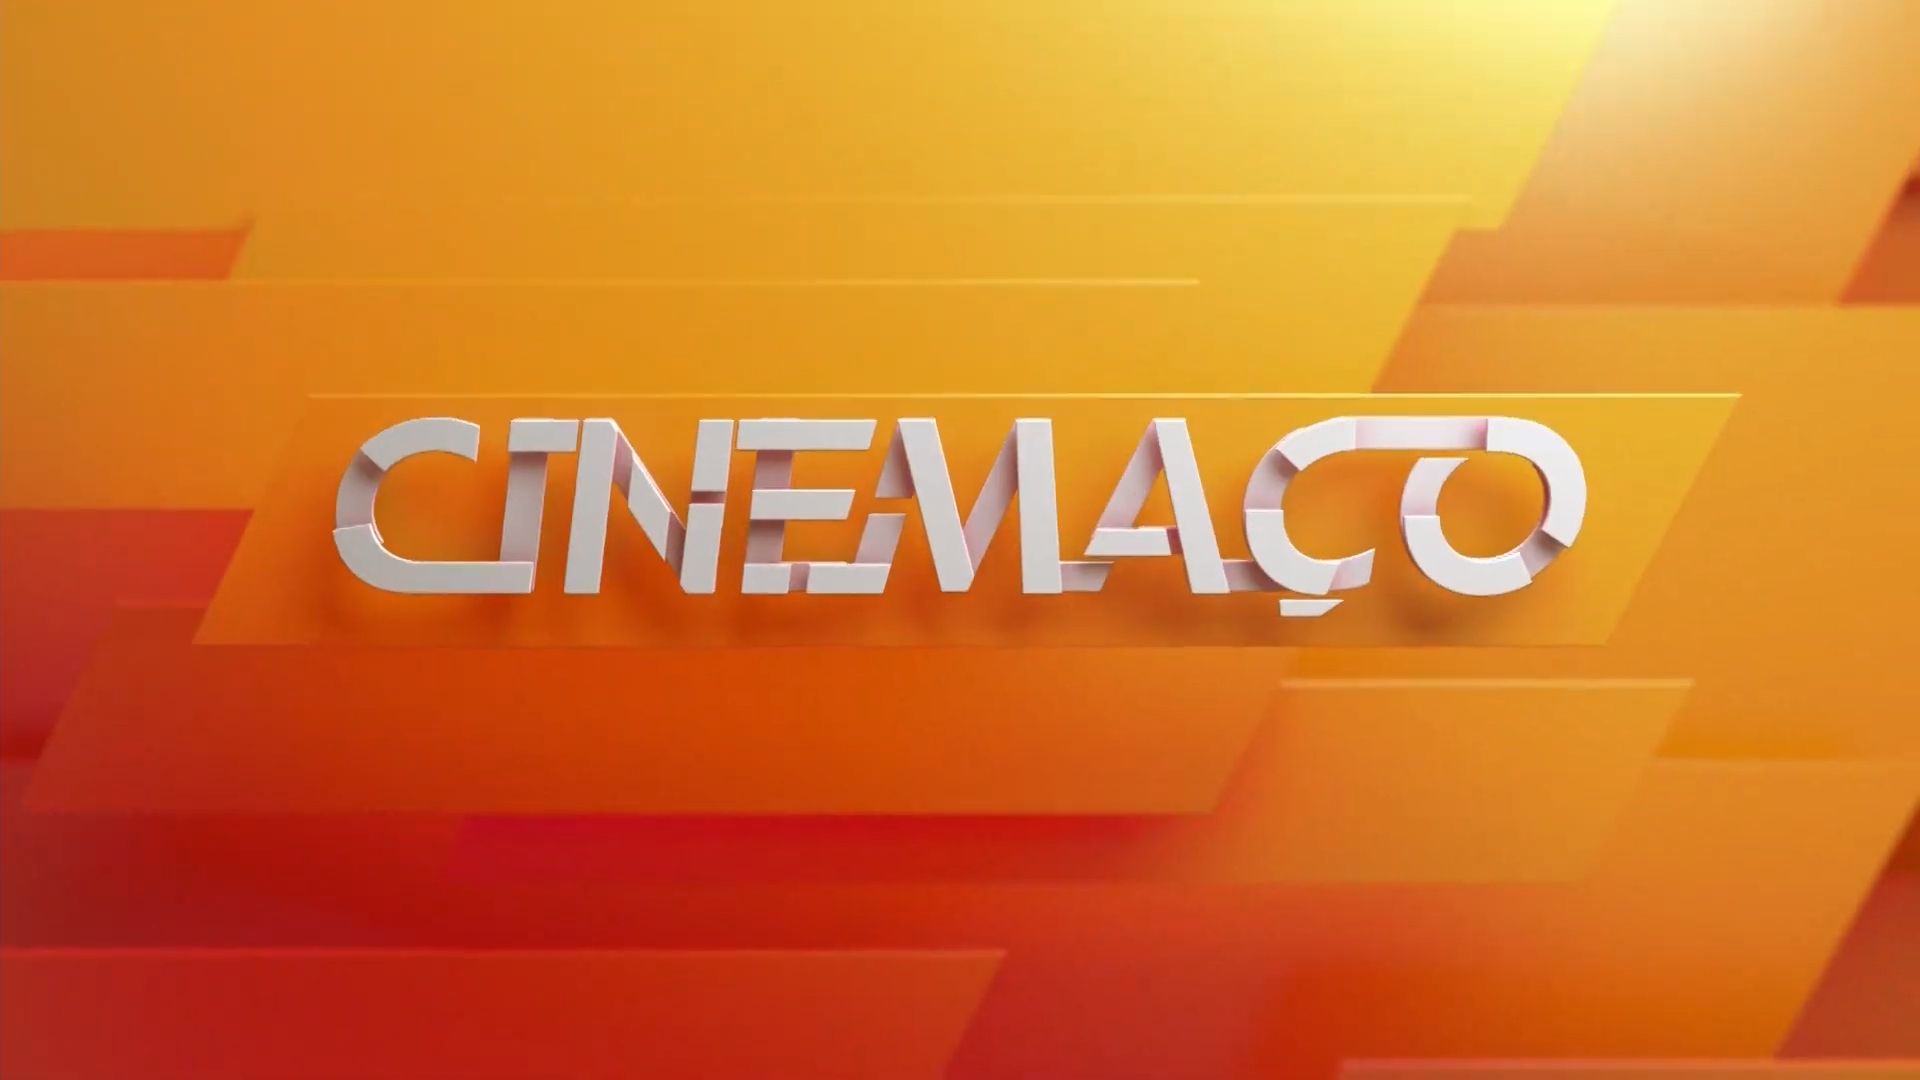 Cinemaço